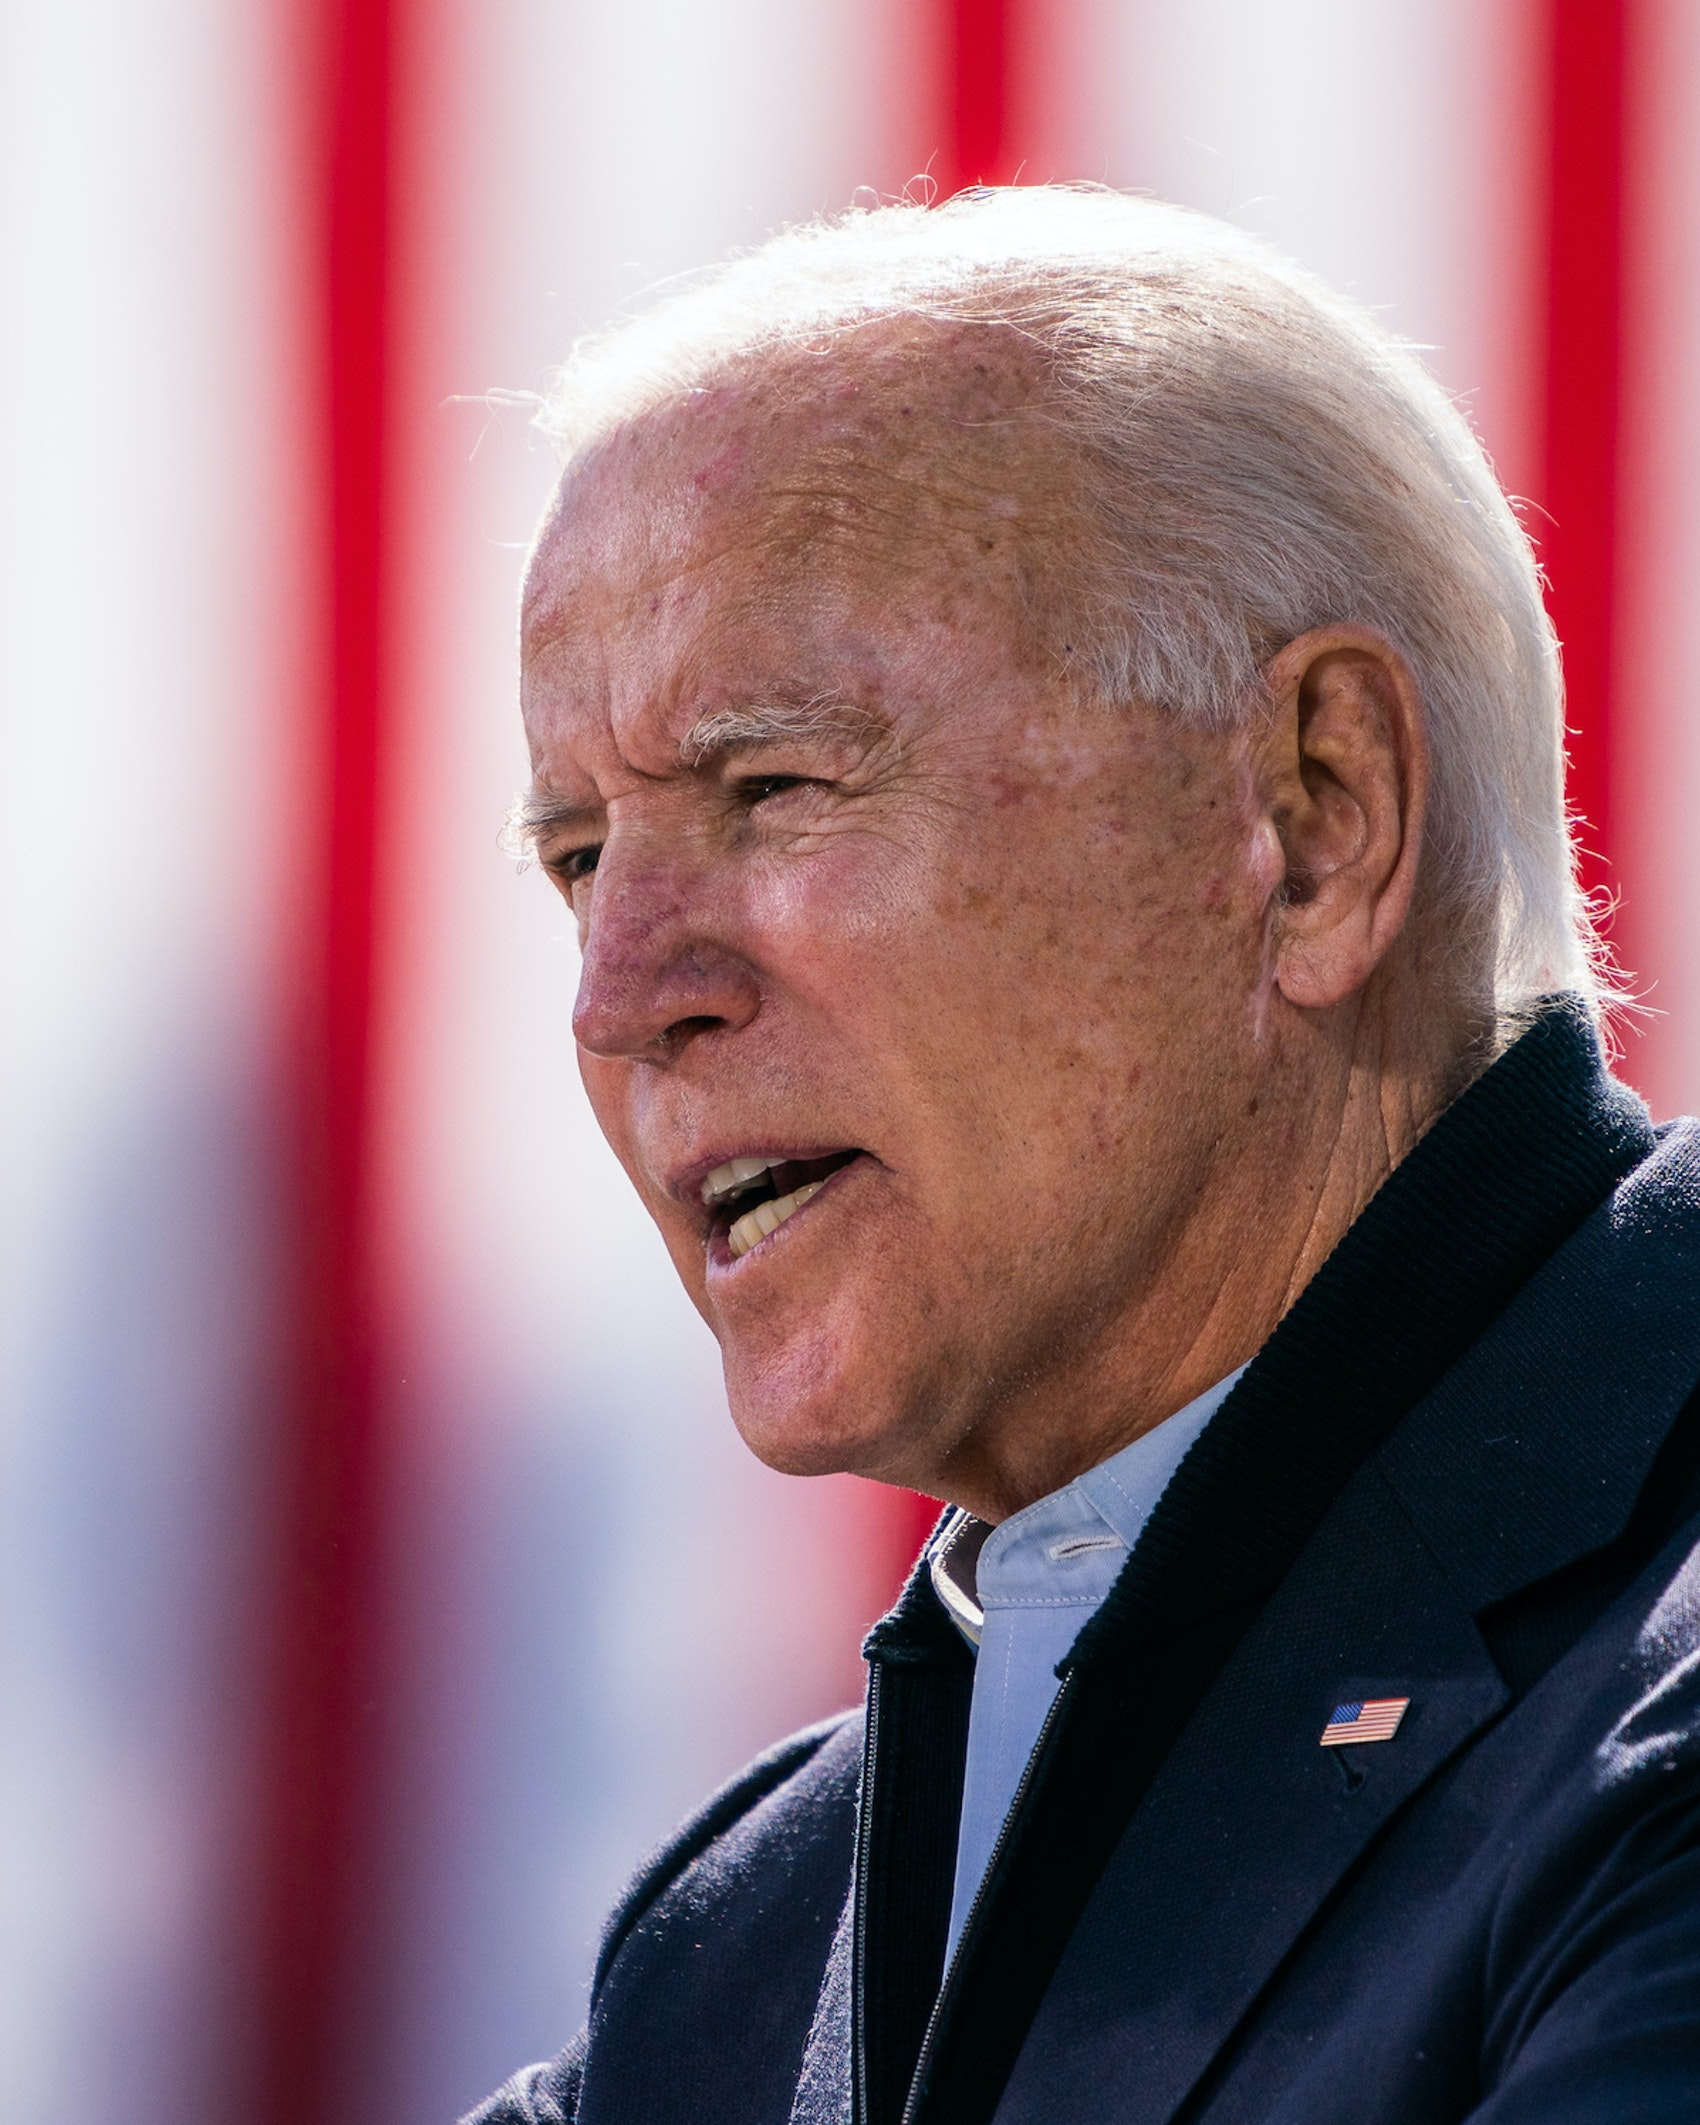 Presidential nominee Joe Biden speaks during a Voter Mobilization event at Riverside High School in Durham, North Carolina on October 18, 2020. (Photo by Demetrius Freeman/The Washington Post via Getty Images)